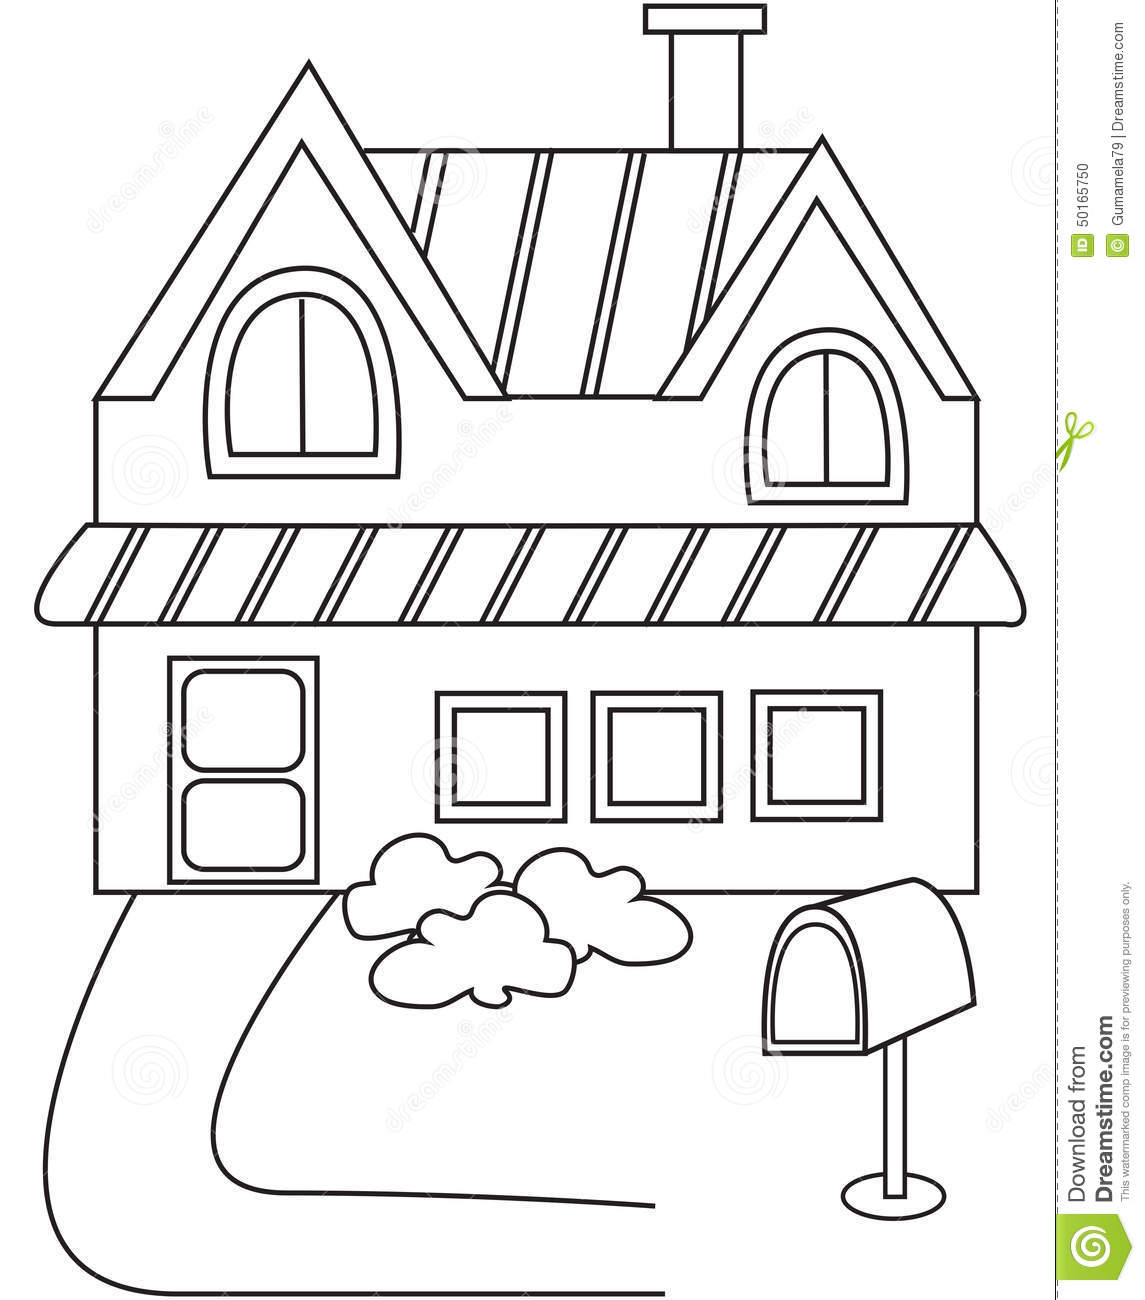 House Roof Colouring Pages Sketch Coloring Page